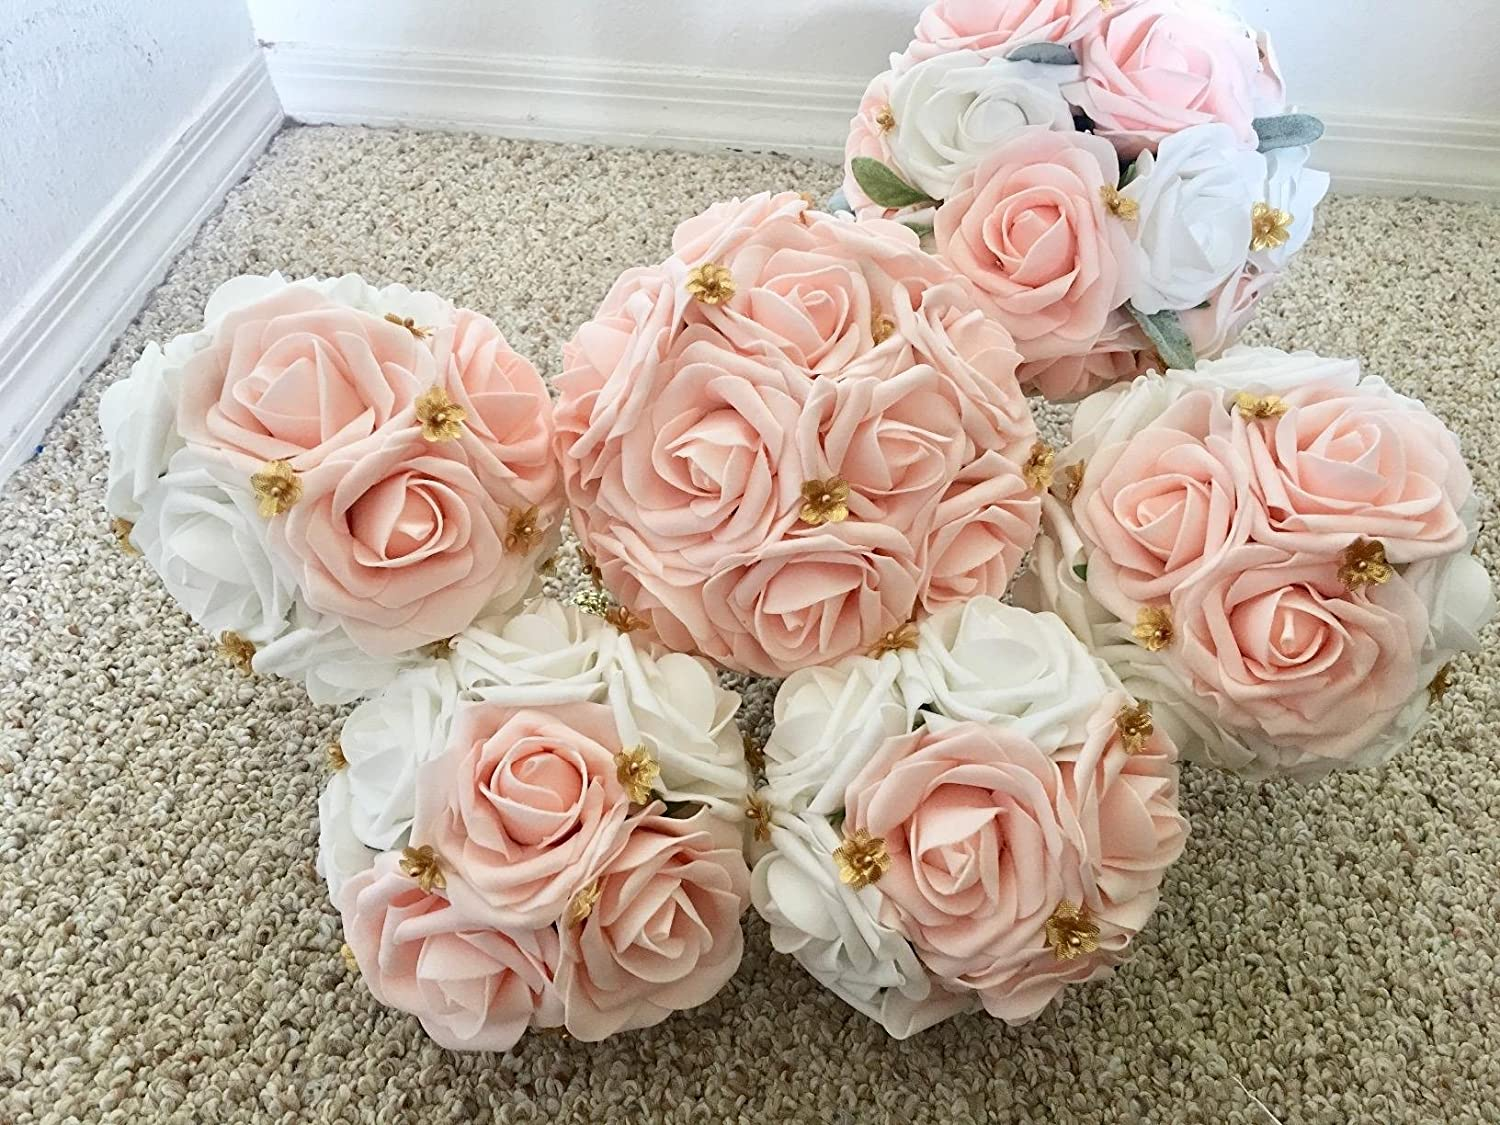 Berry Pink DerBlue 60pcs Artificial Roses Flowers Real Looking Fake Roses Artificial Foam Roses Decoration DIY for Wedding Bouquets Centerpieces,Arrangements Party Baby Shower Home Decorations